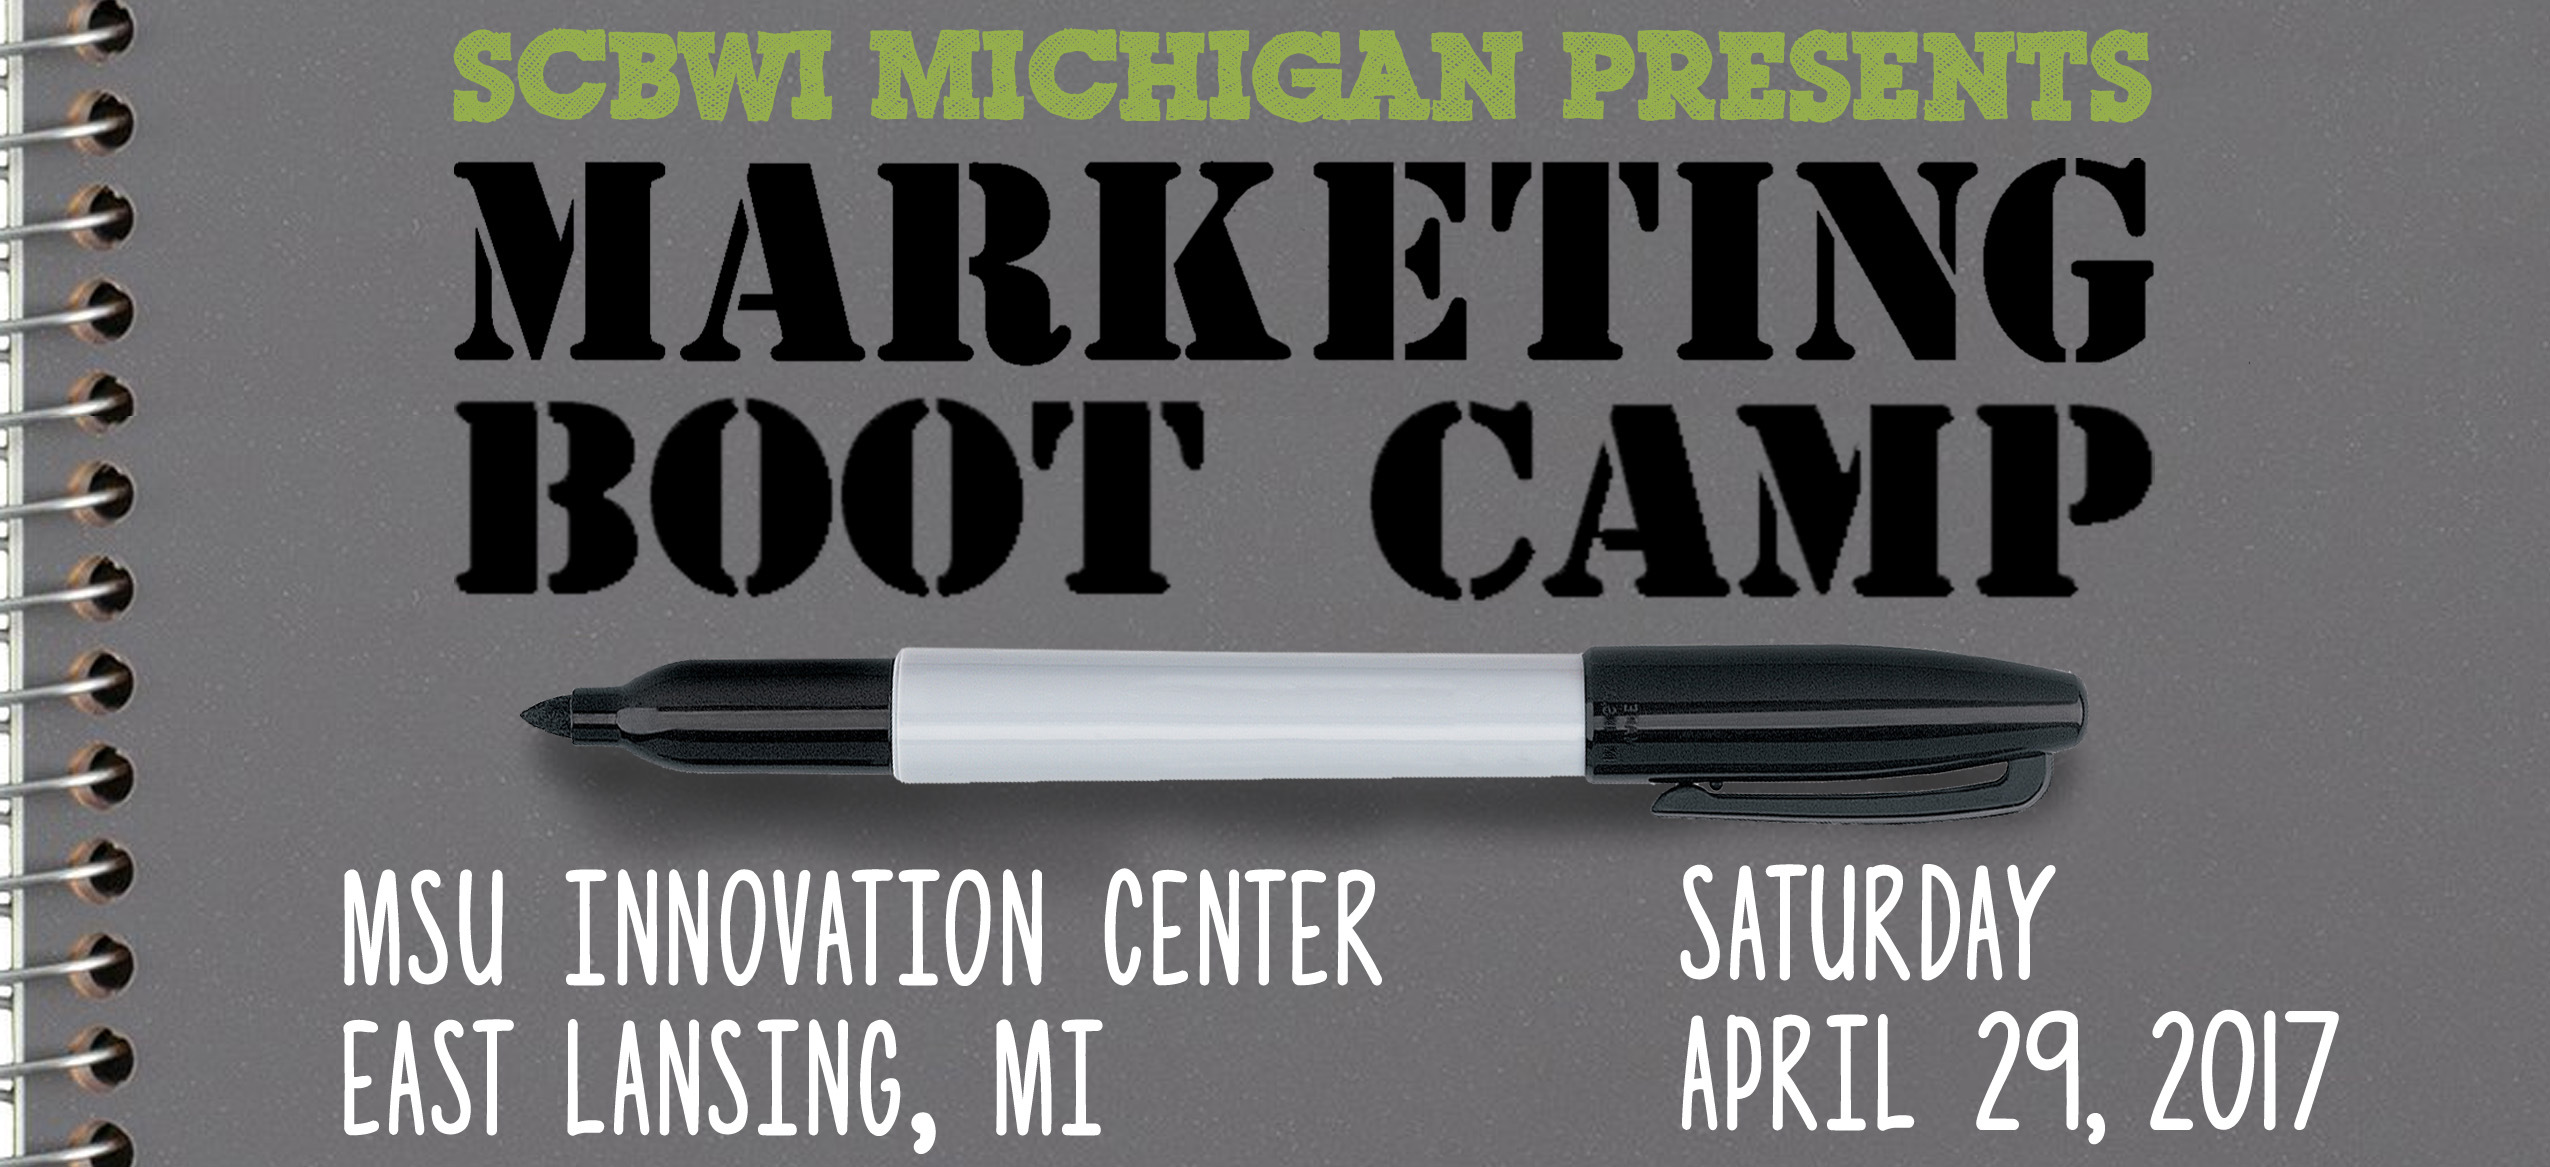 So you've written and/or illustrated a story. Now how do you plan for and gain a readership? The SCBWI Michigan Marketing Boot Camp is your window into the business side of publishing. With sessions covering author visits, marketing, self-promotion, and more, our diverse and experienced faculty will have you feeling confident and ready for what comes next. Registration isopen tomembers andnot yetmembers butseating islimited.Register nowto hold your seat! $35 for members, $65 for not yet members -- includes all programming and light refreshments To register, click here  Speakers Bootcamp Faculty Bios .pdf MARIA DISMONDYis an award-winning author who inspires lives through her poignant stories about topics challenging today's modern child. Maria's background in early education and commitment to teach the importance of character building enables her to touch lives the world over while touring as a public speaker in schools, community forums, and at national conferences. When Maria isn't writing, she can be found embarking on adventures throughout southeast Michigan and beyond, where she lives with her husband and three book-loving children. LESLIE HELAKOSKIis the author and sometimes illustrator of ten picture books.All of Leslie's books are known for their humor and word play and includeWoolbur,Big Chickens,Big Pigs and Doggone Feet!(A best math choice by Scholastic Magazine.) Her books have won acclaim with Junior Library Guild, received starred reviews, been highlighted in Book Sense Picks and were nominated for awards in over 20 states across the country. She has illustrated her four most recent books, includingHoot and Honk, which tells the story of a gosling and an owlet that hatch in each other's nest and cannot get to sleep at the right time.The upcomingReady or Not? Woolbur Goes to Schoolwill be released in 2018.Leslie is also the co-Regional Advisor for Michigan's chapter of the Society of Children's Book Writers and Illustrators. BOB HOFFMANis the manager of